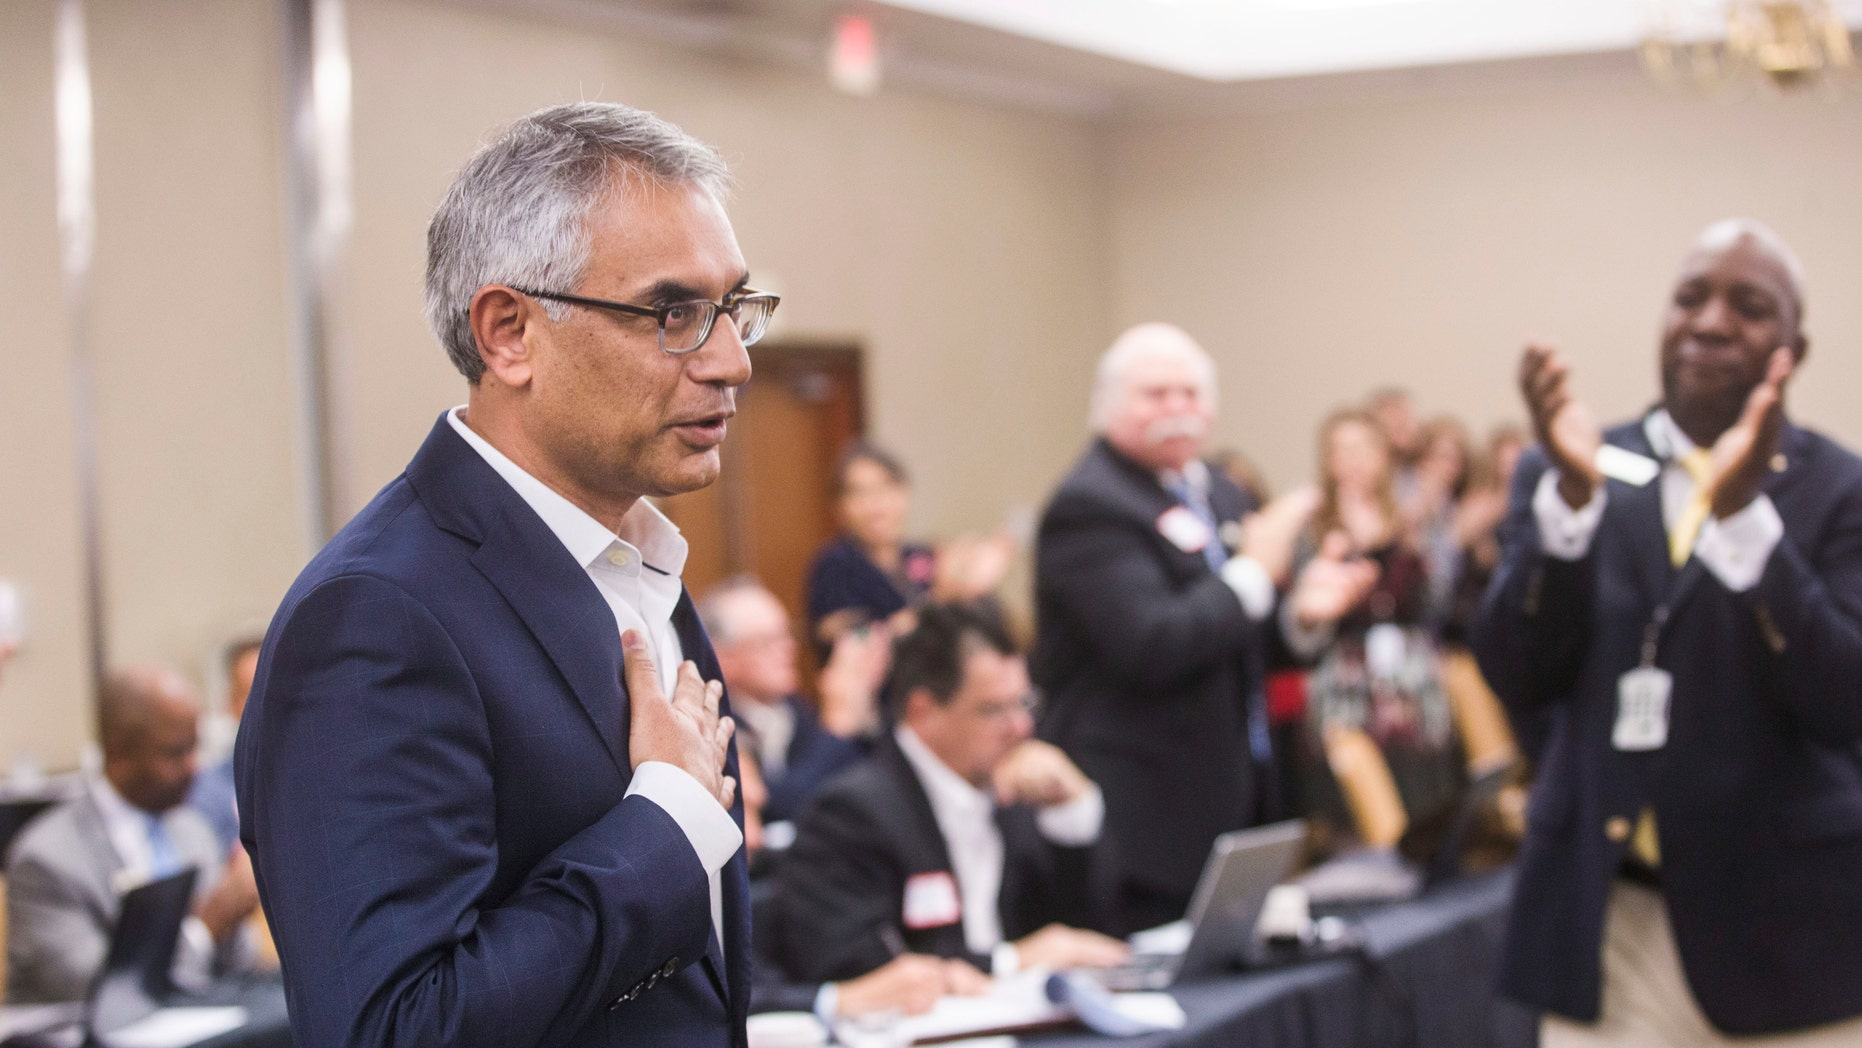 Dr. Shahid Shafi, a trauma surgeon, has worked with the Tarrant County GOP for about 10 years.